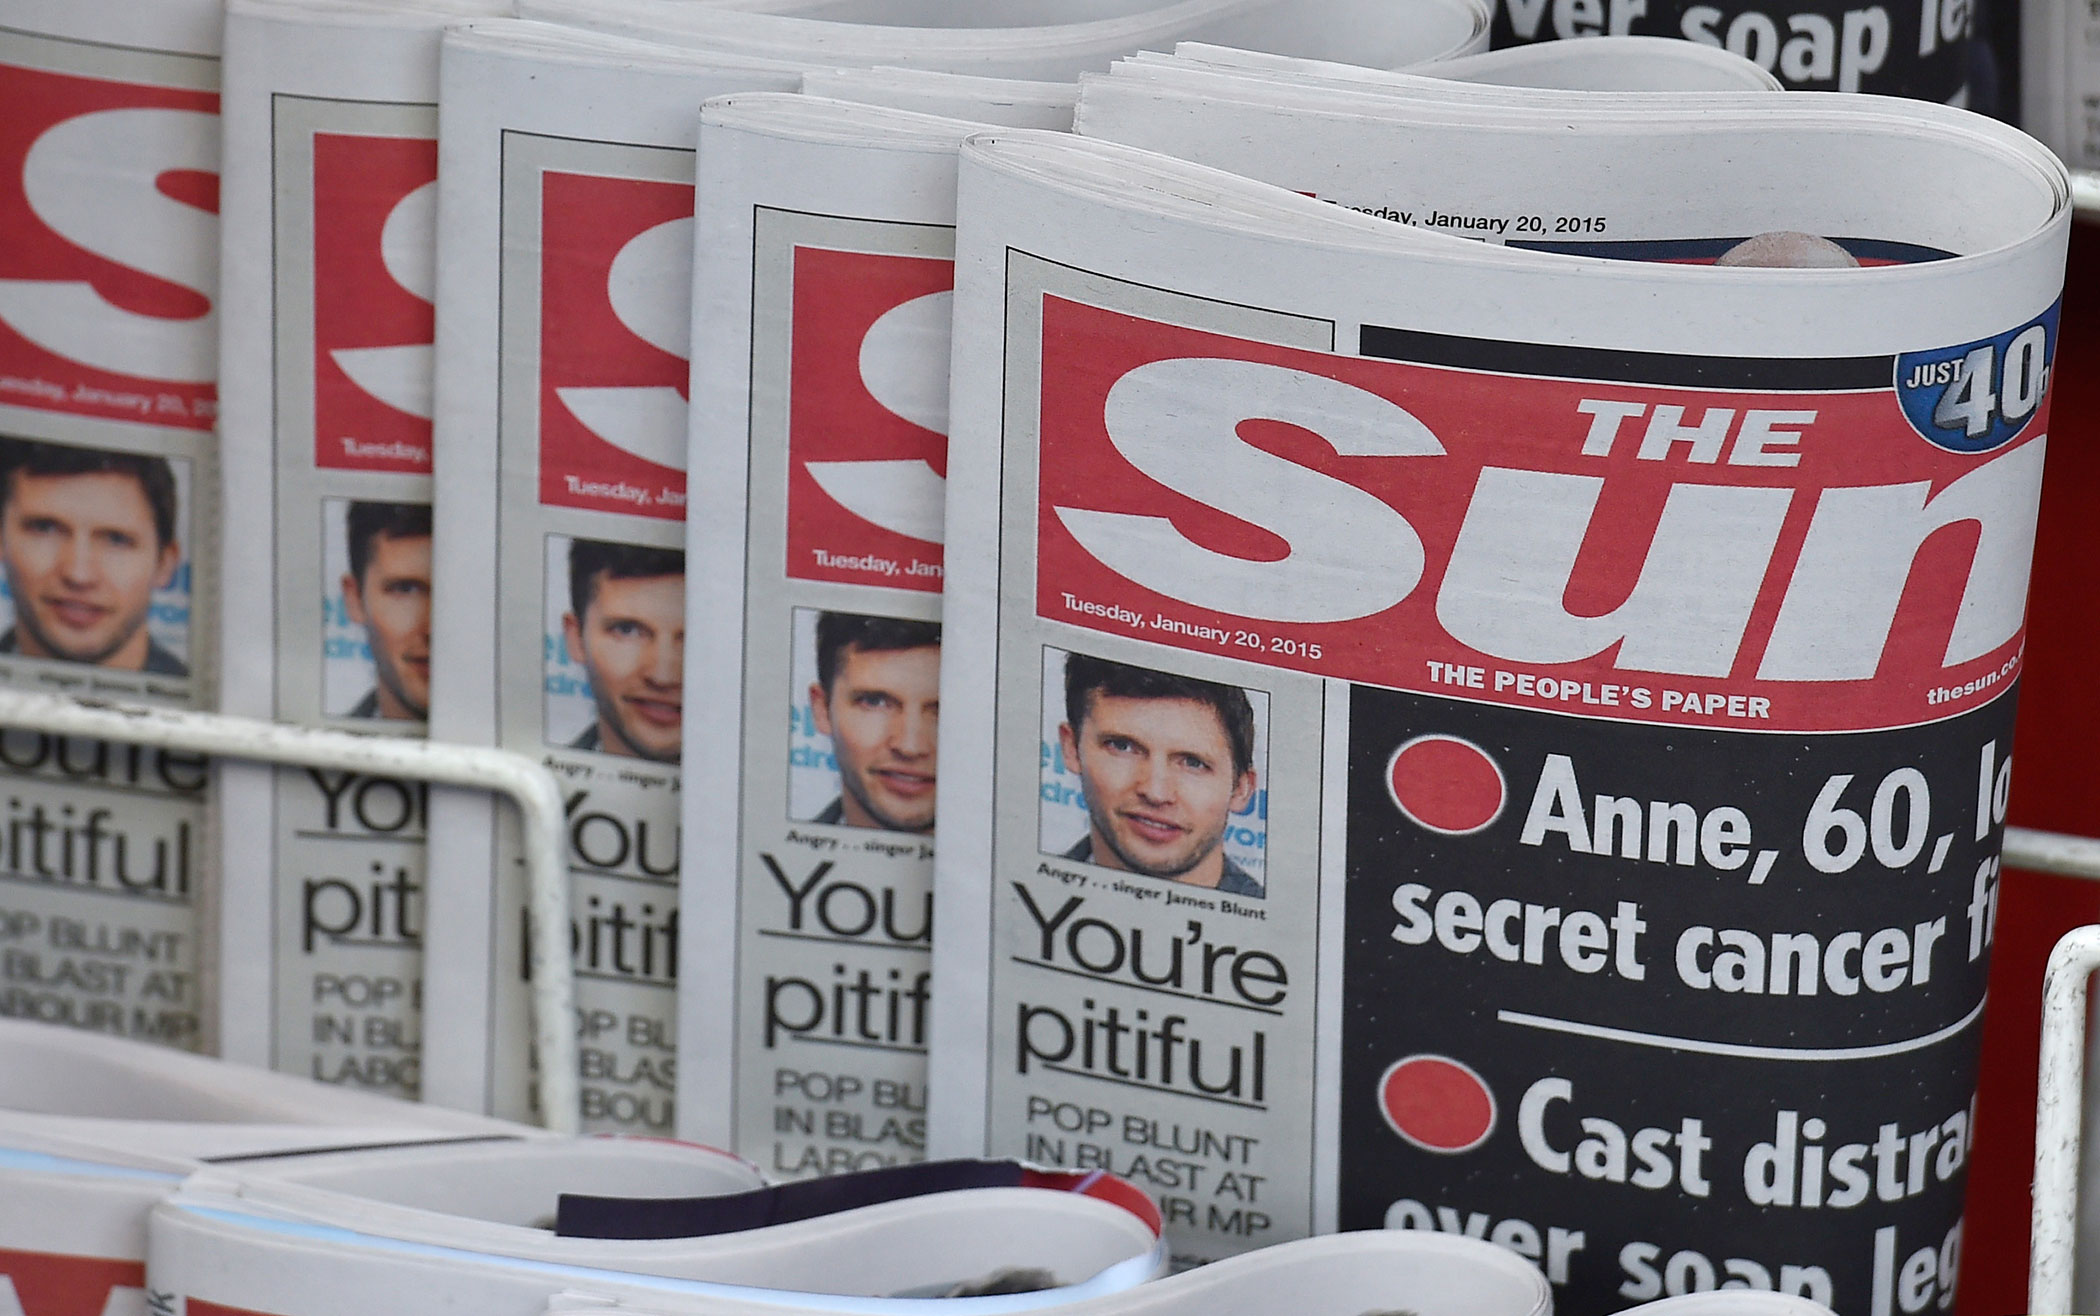 Copies of The Sun newspaper are seen on a newsstand outside a shop in central London Jan. 20, 2015.